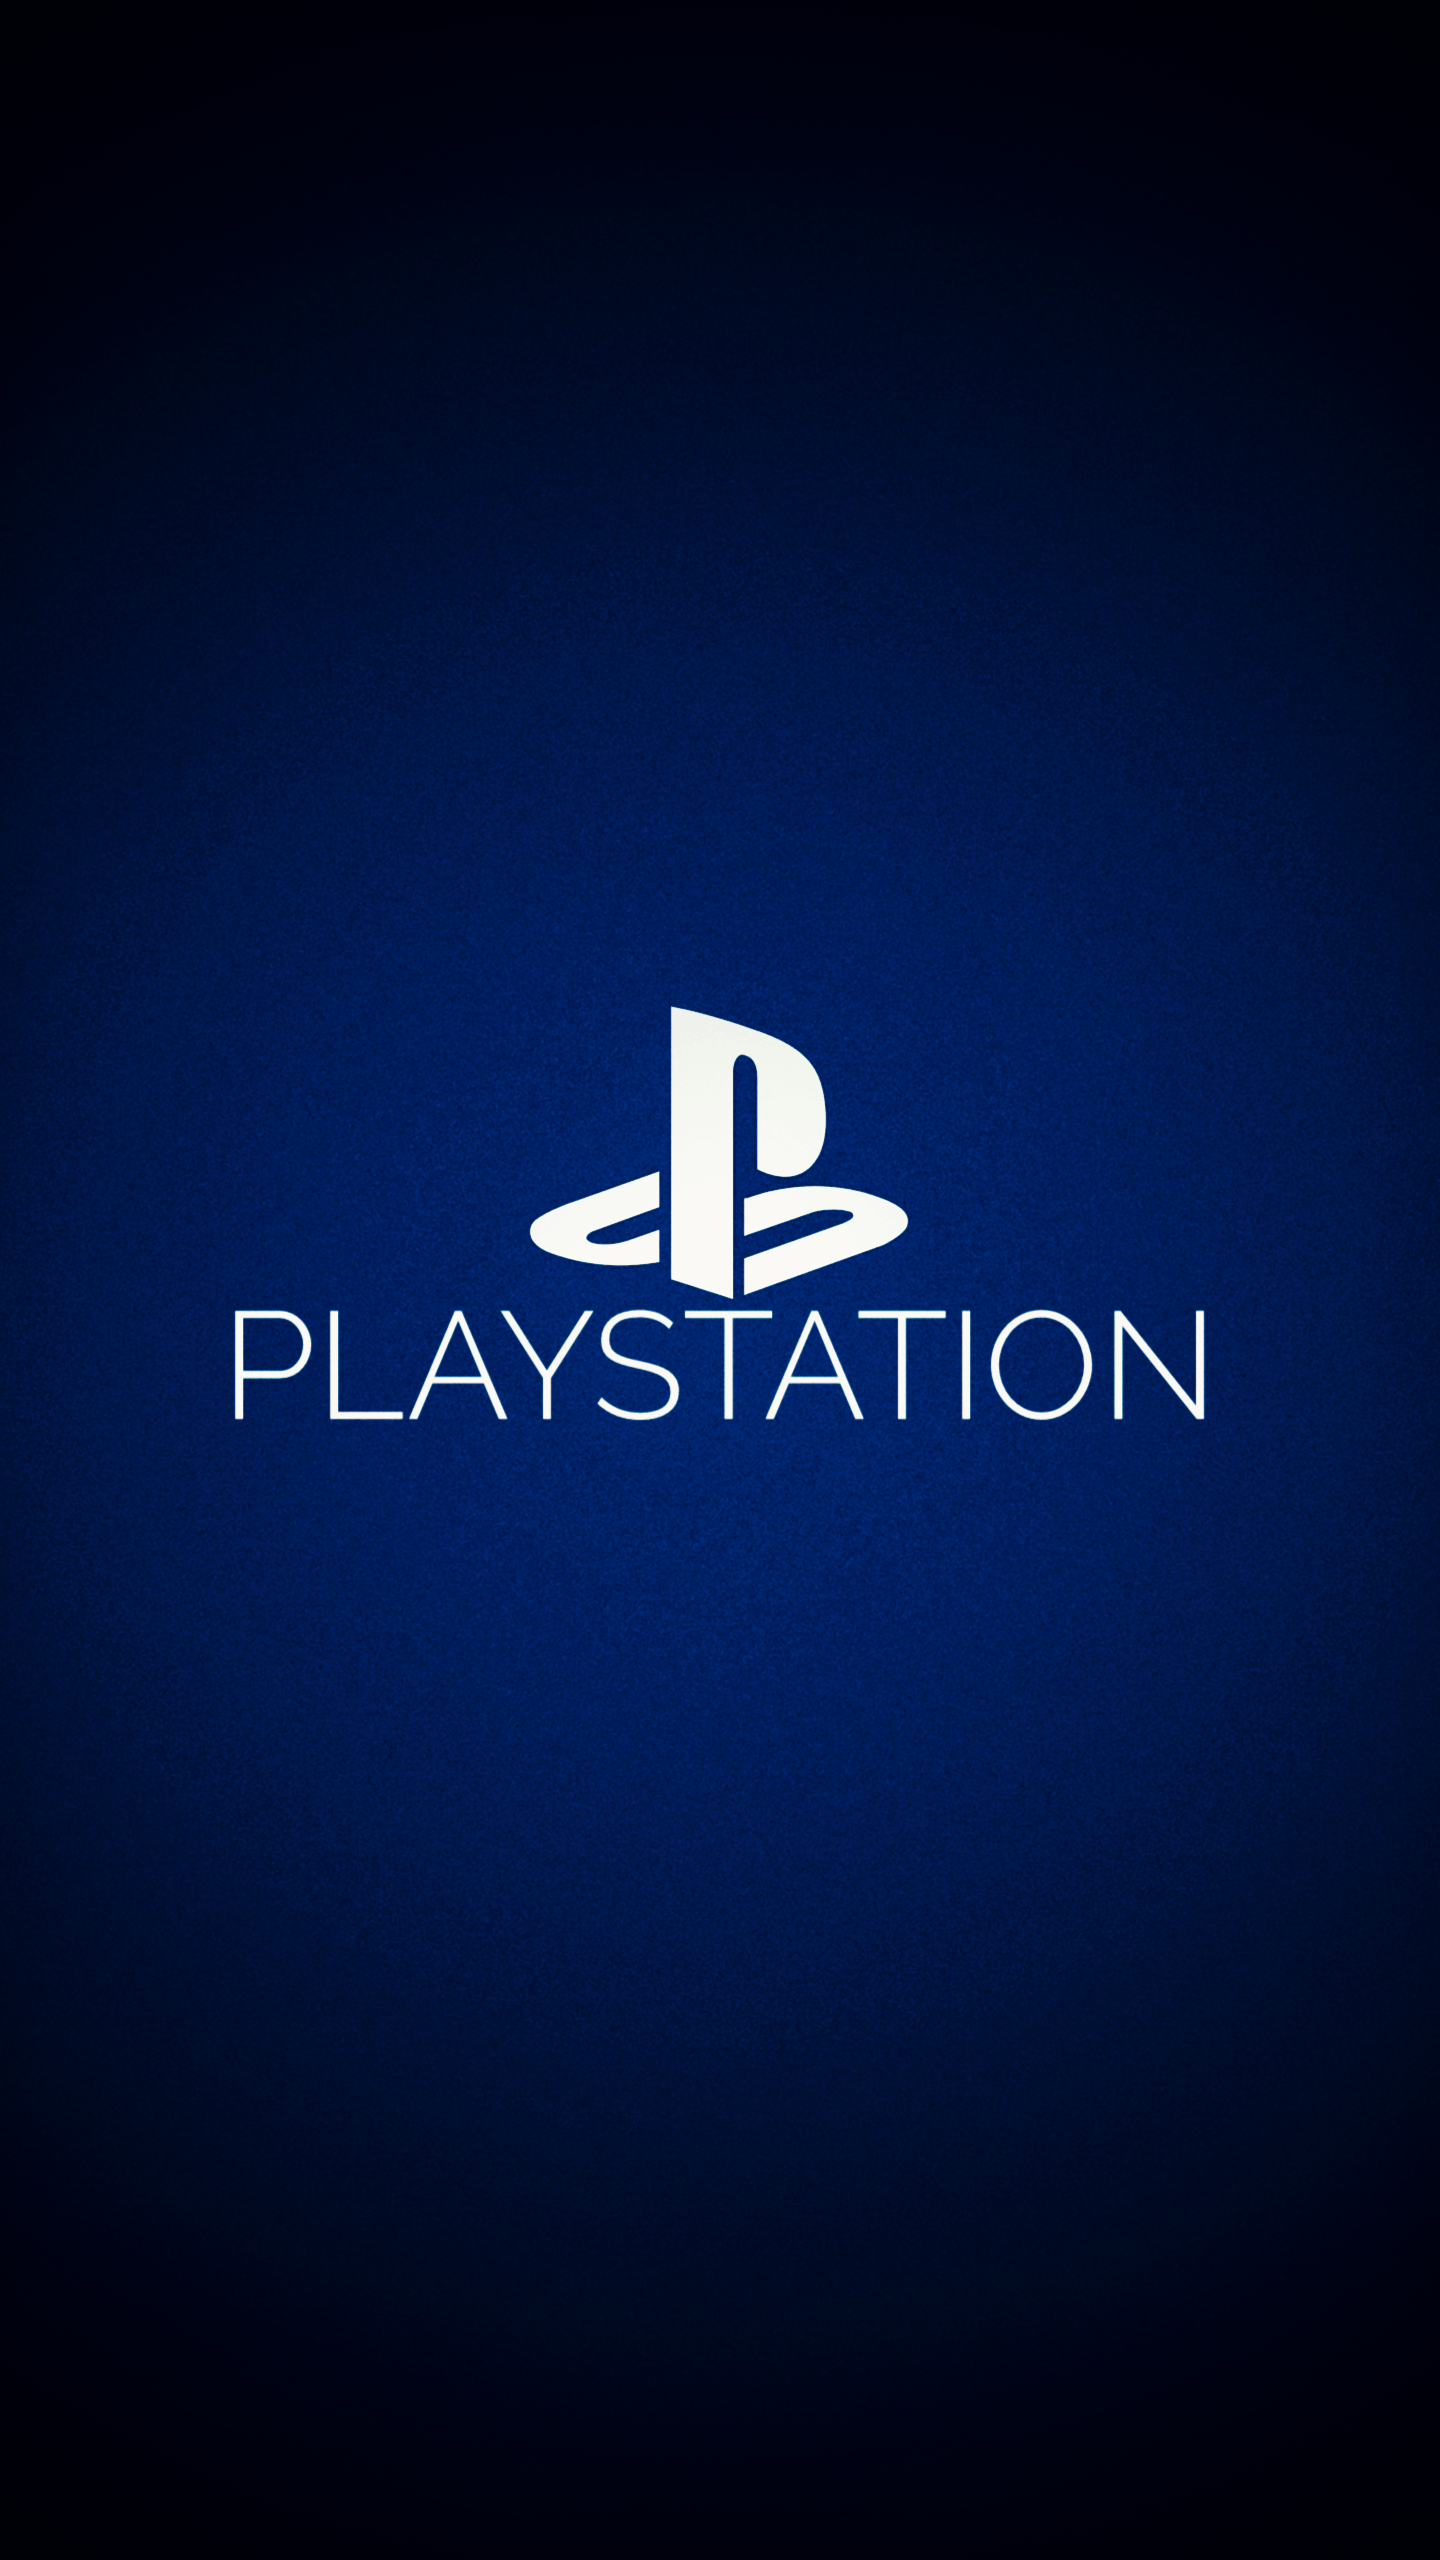 play station wallpapers - wallpaper cave